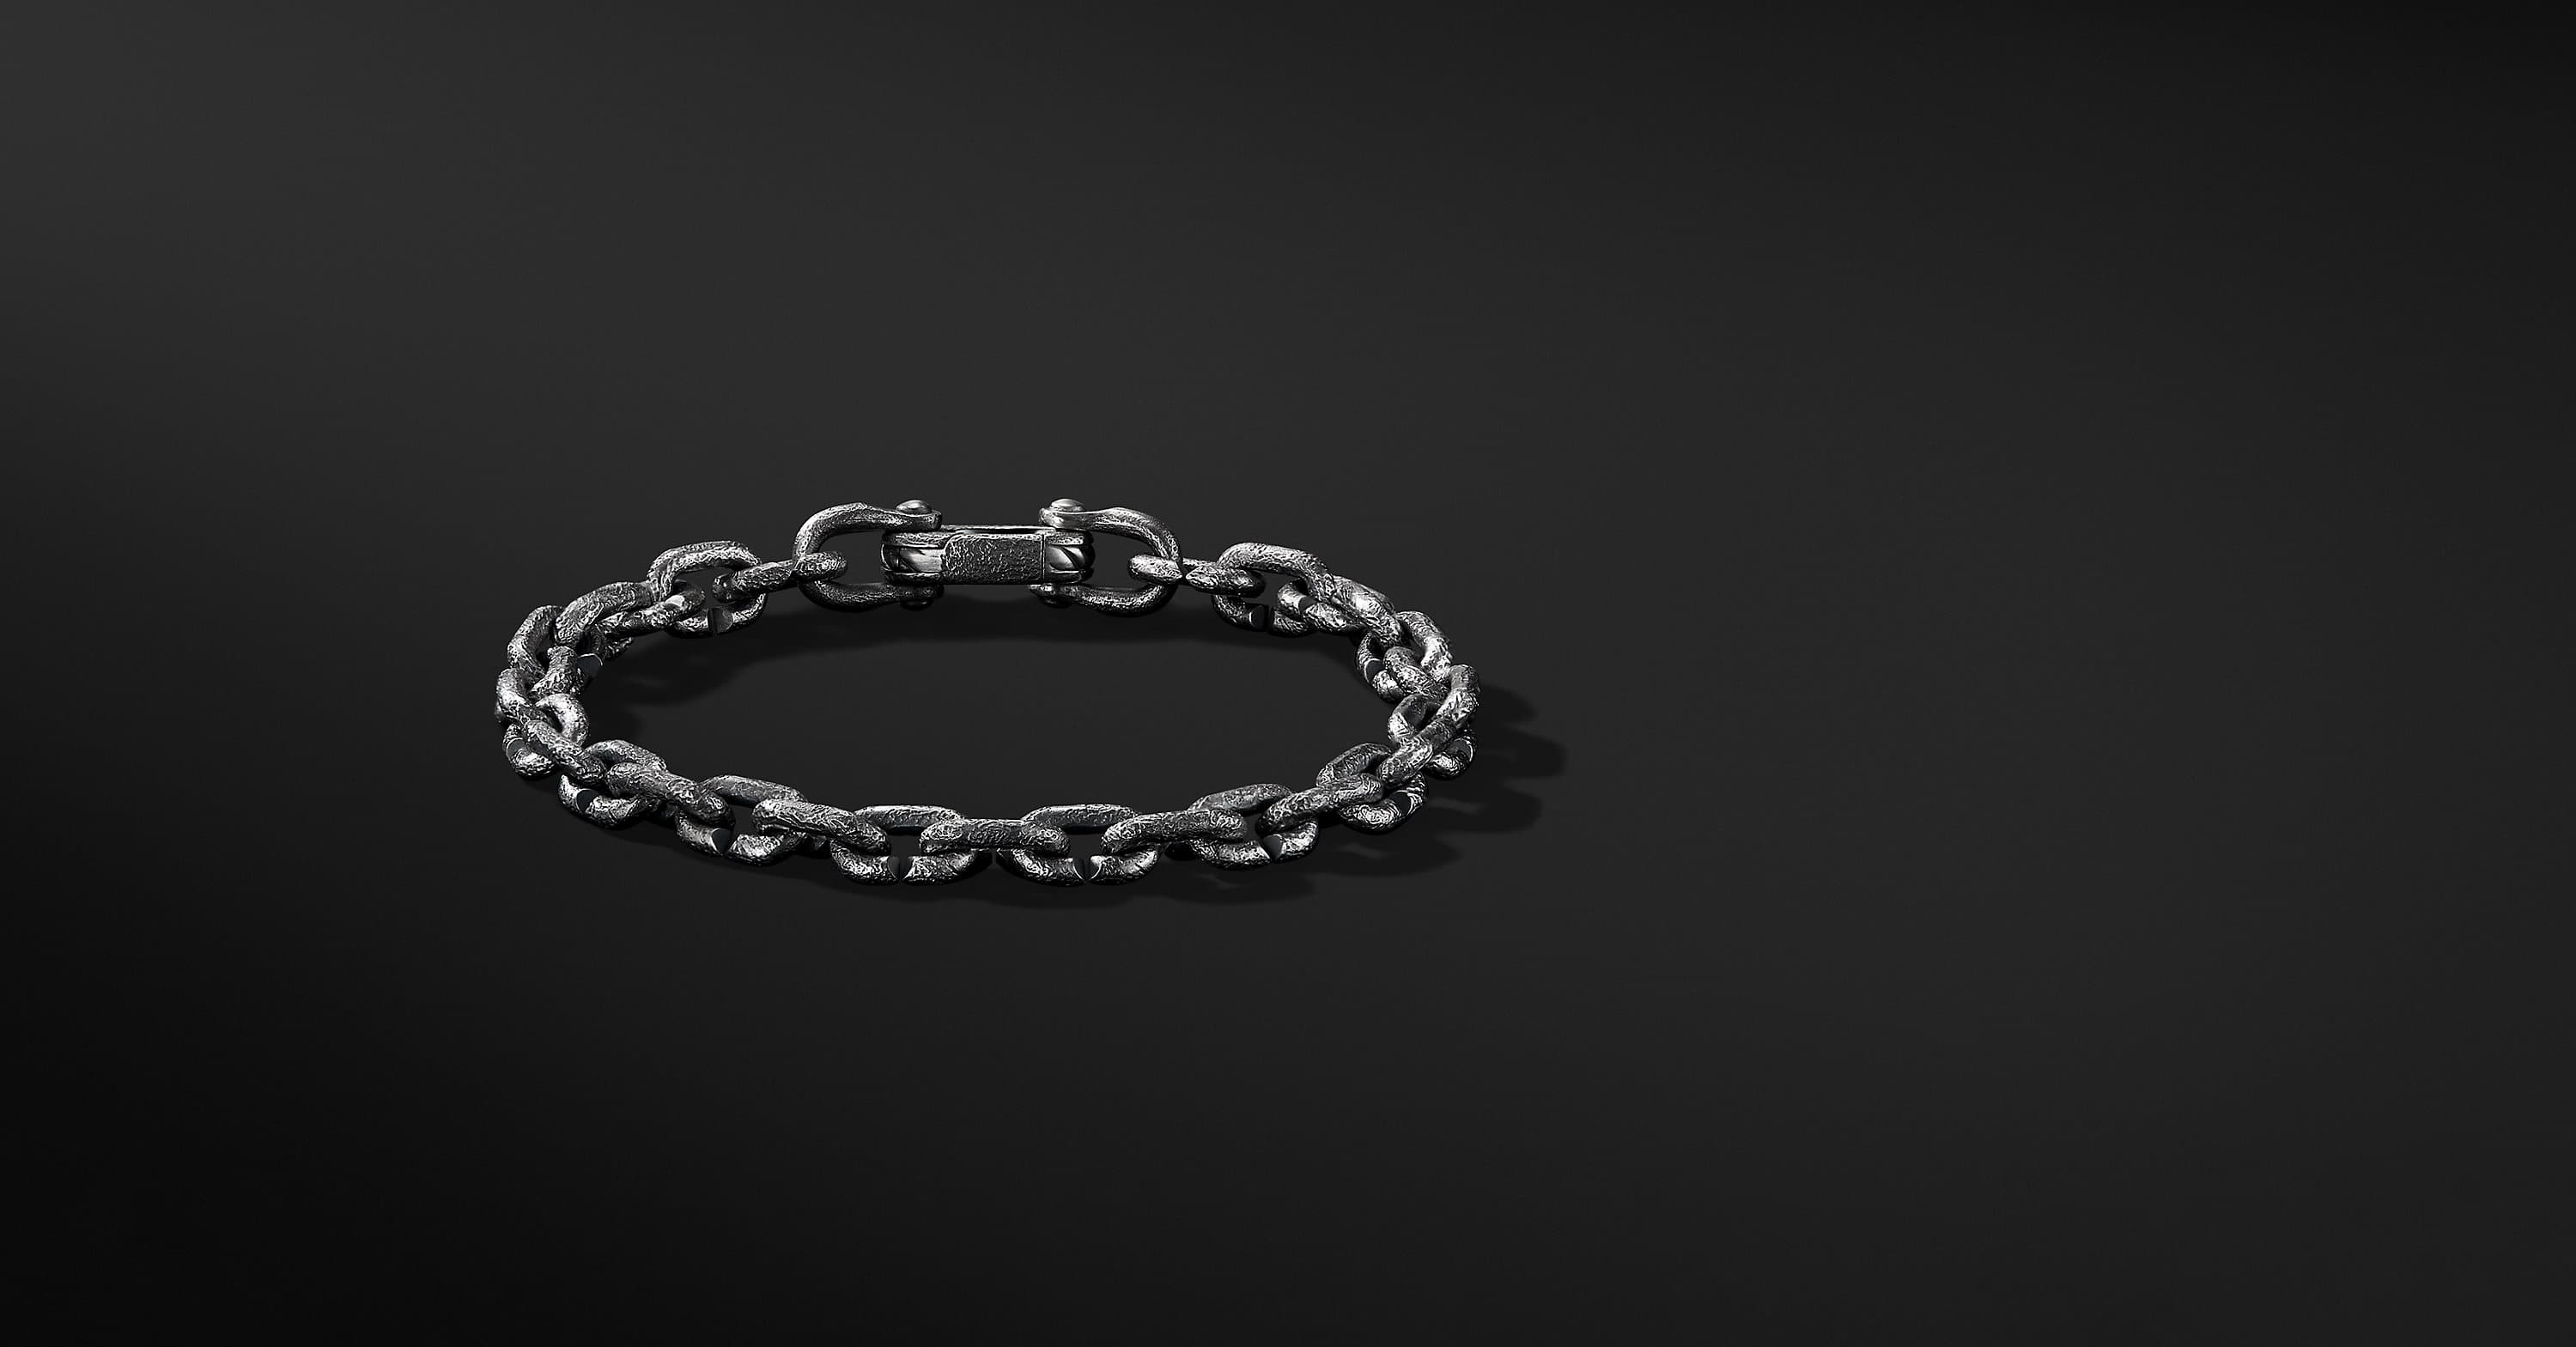 Shipwreck Chain Bracelet, 10mm